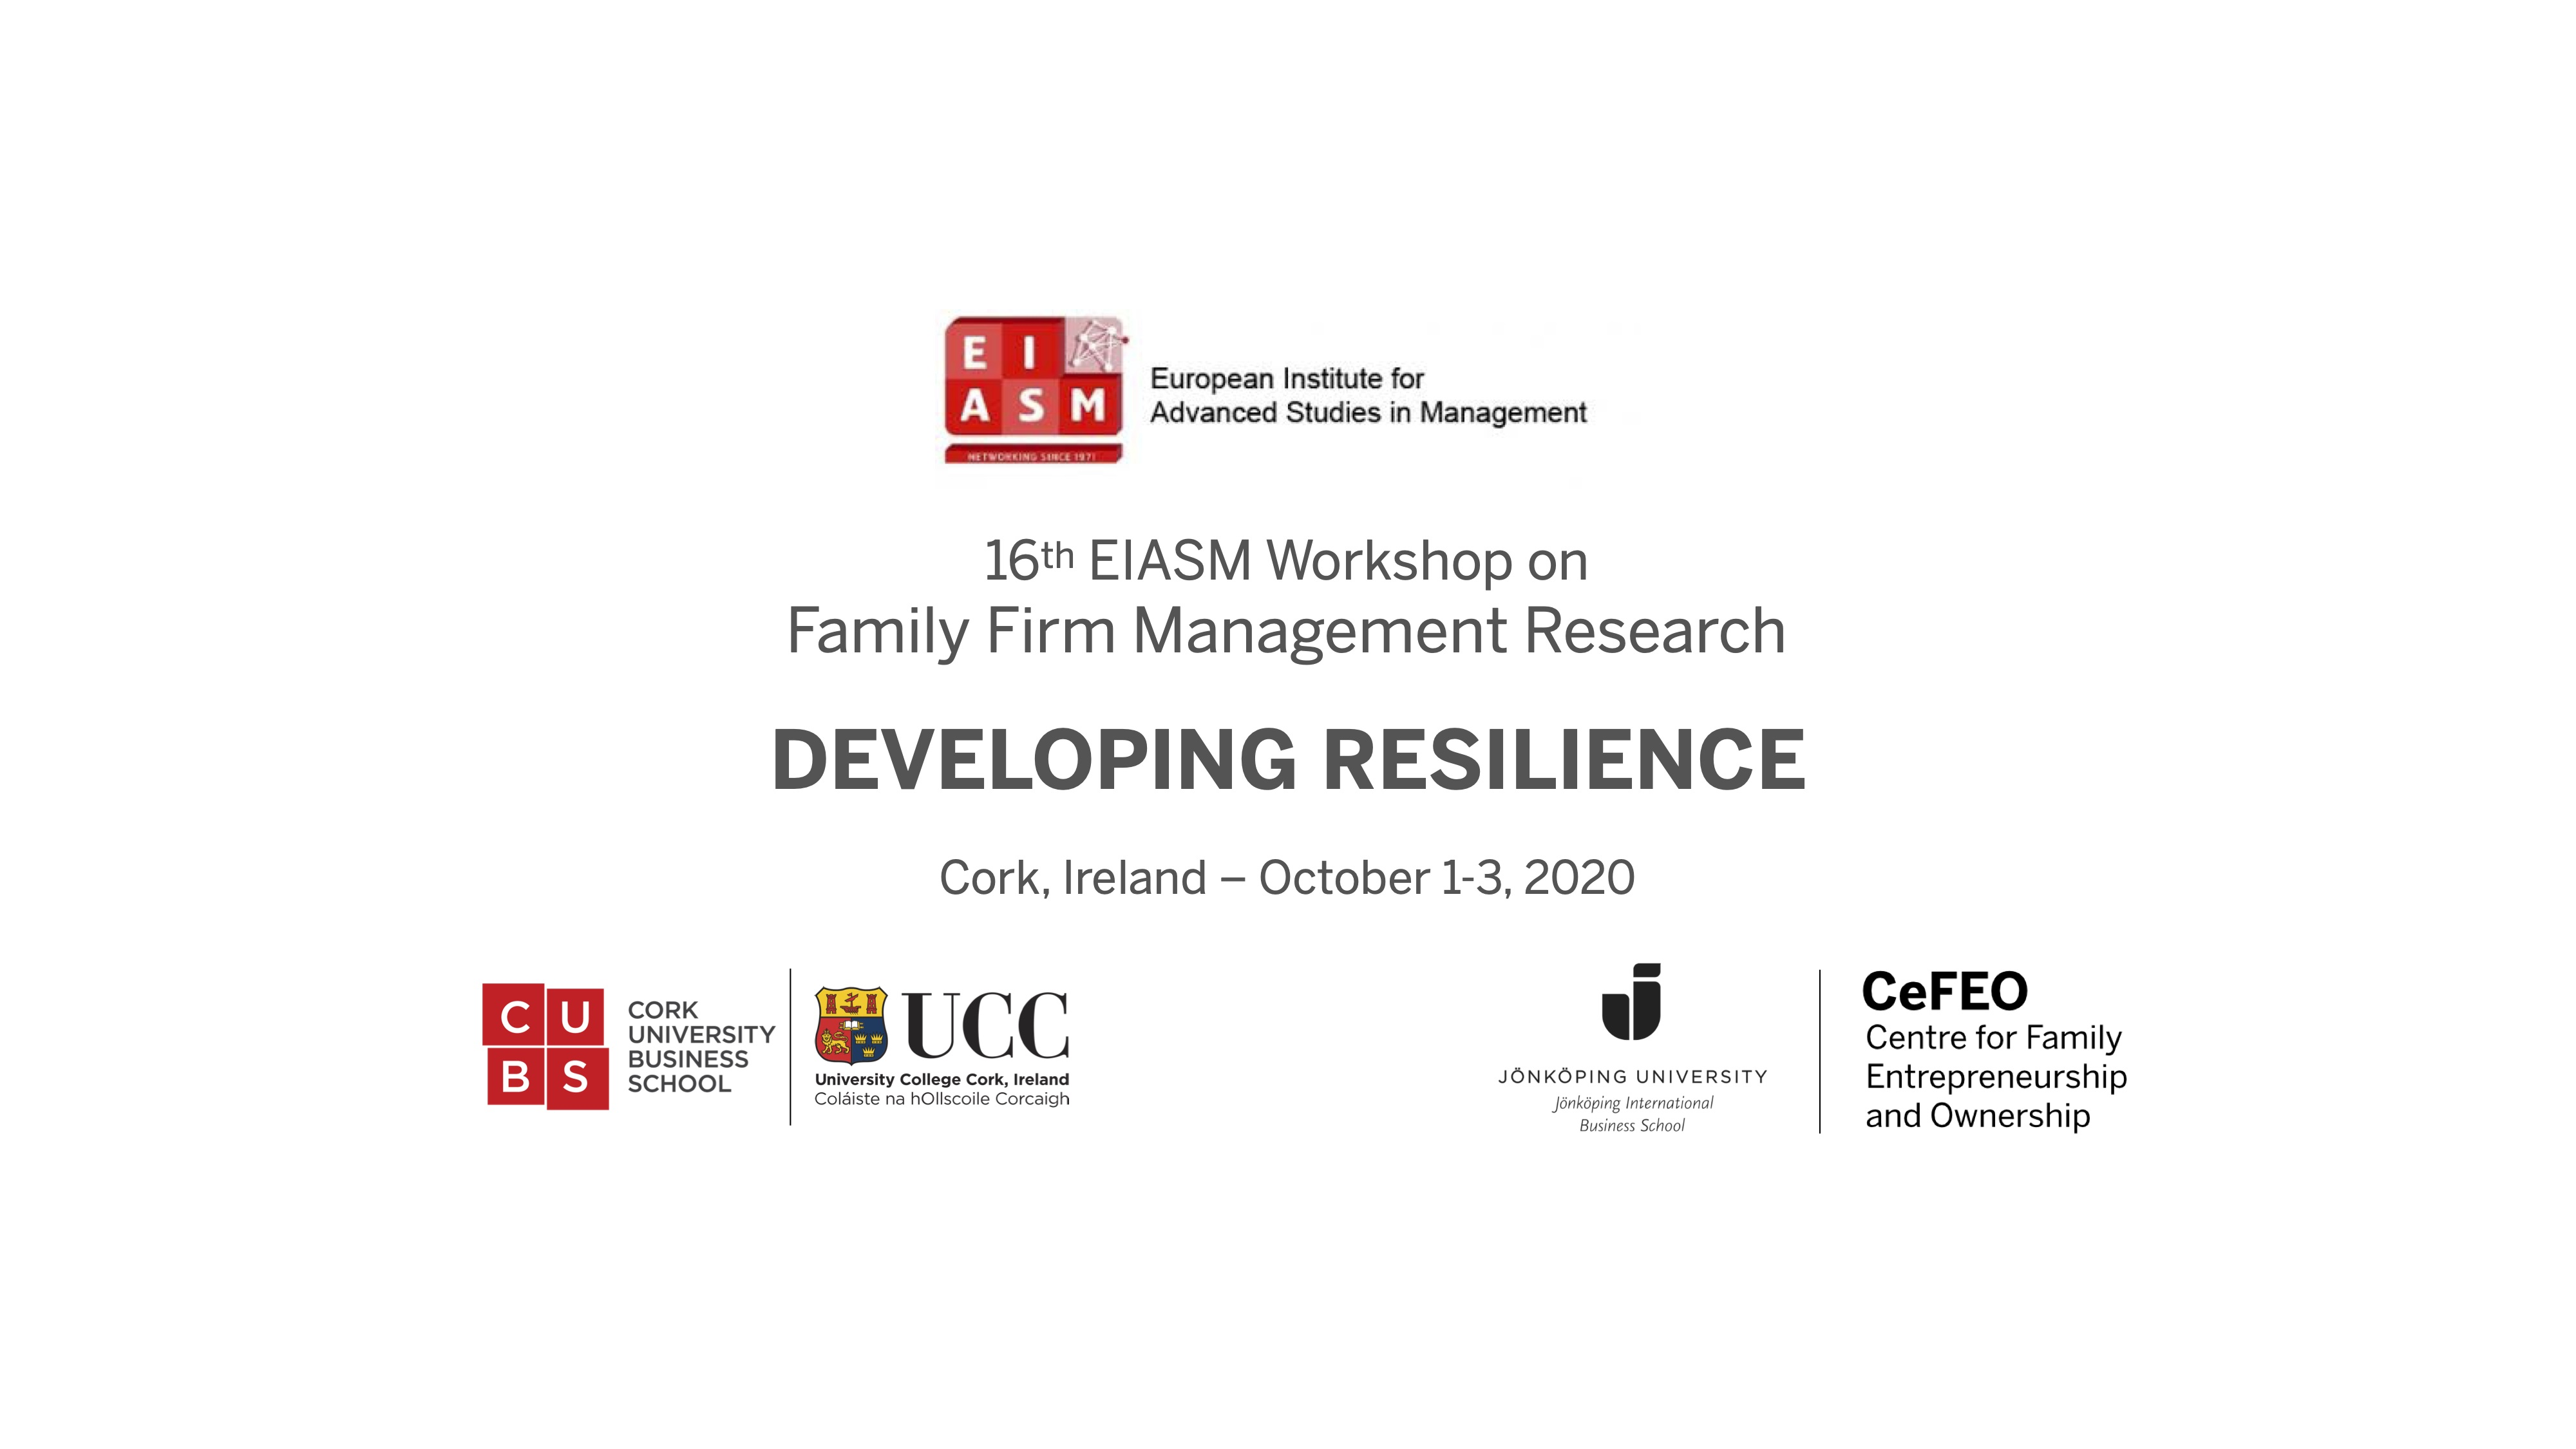 Text: Developing resilience - workshop on Family firm management research